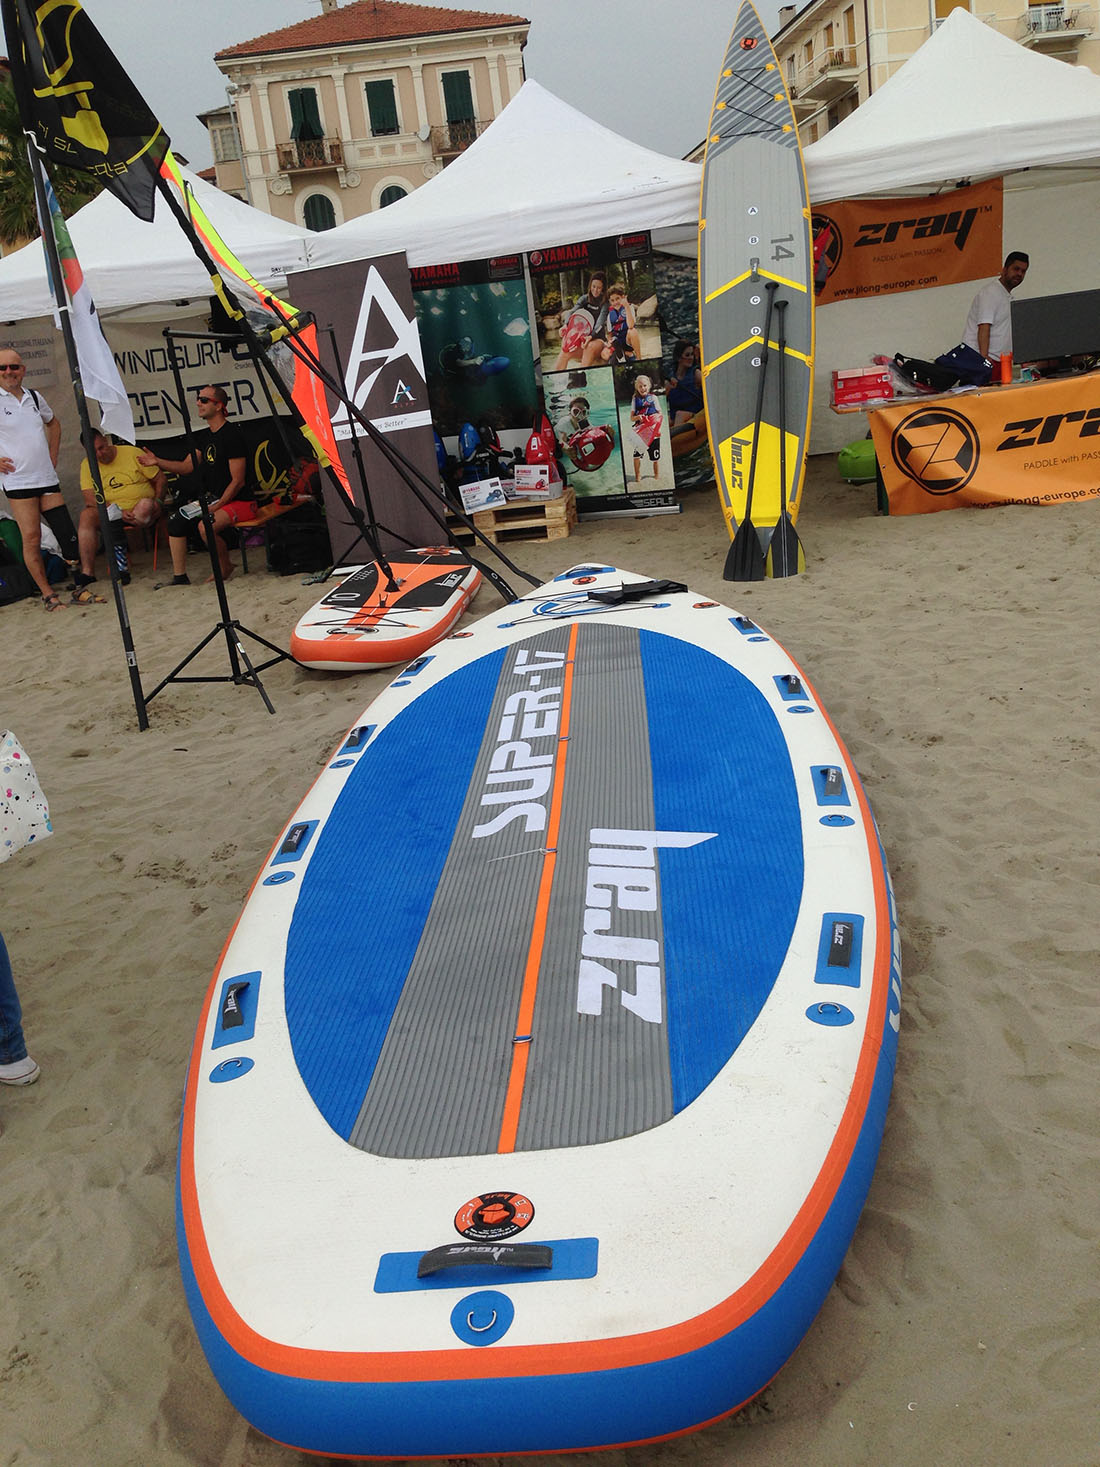 sup-news-2017-windfestival-15